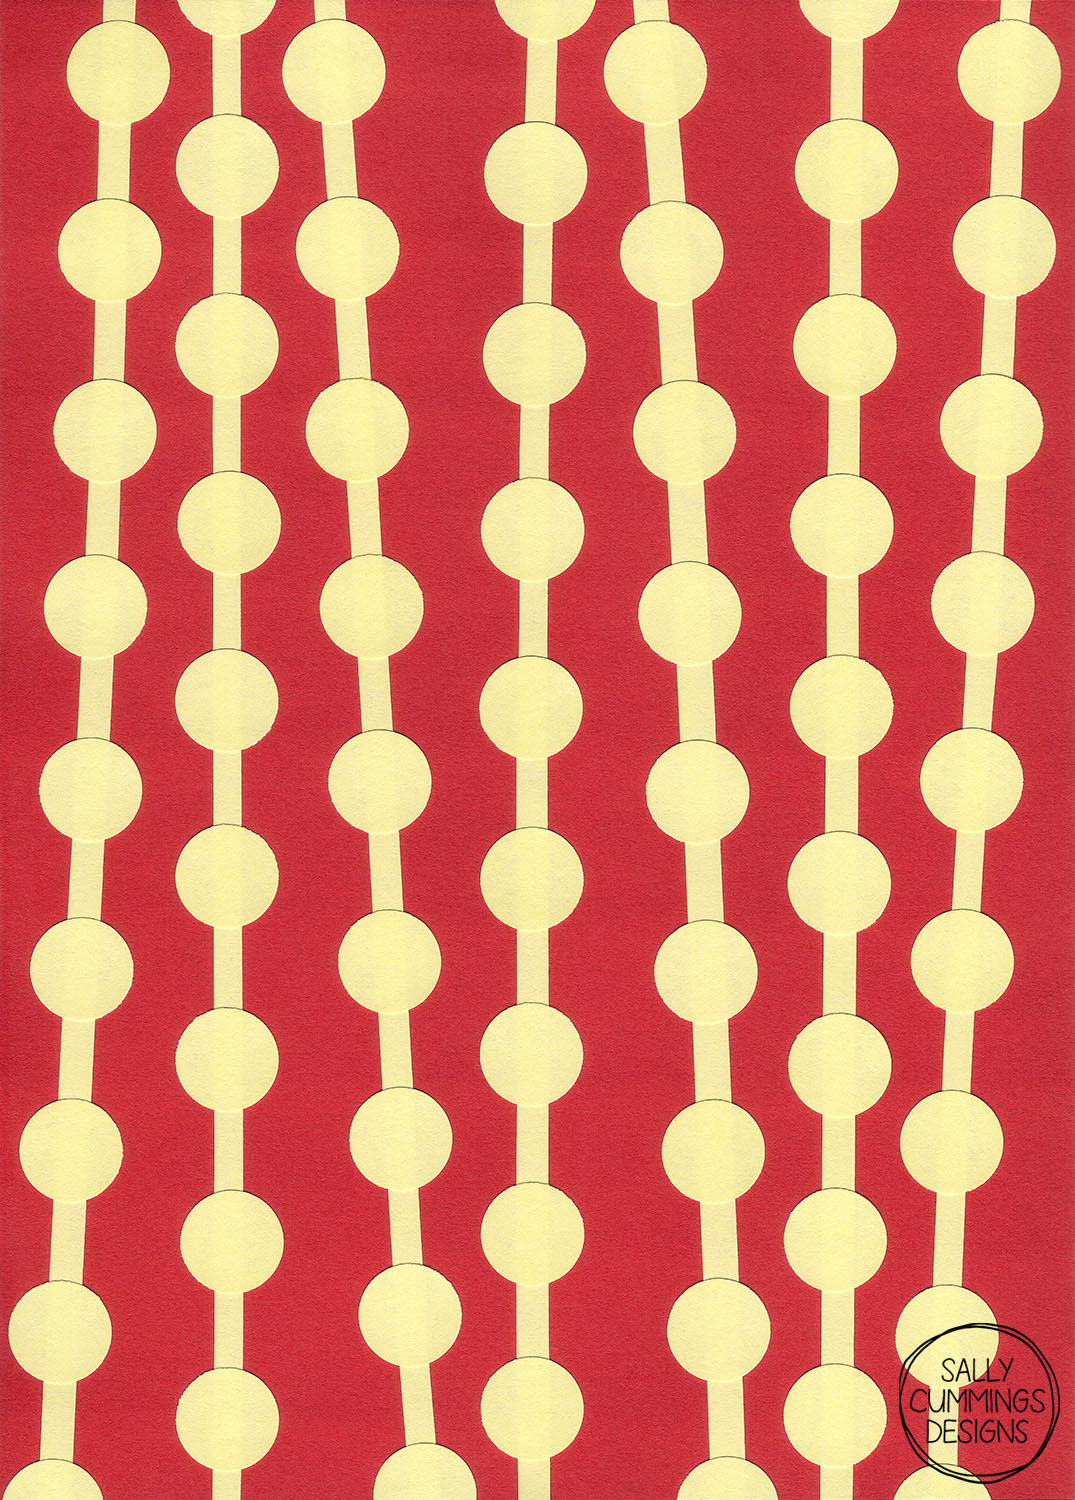 Sally Cummings Designs - Bead Curtain Collage (Red and Yellow)